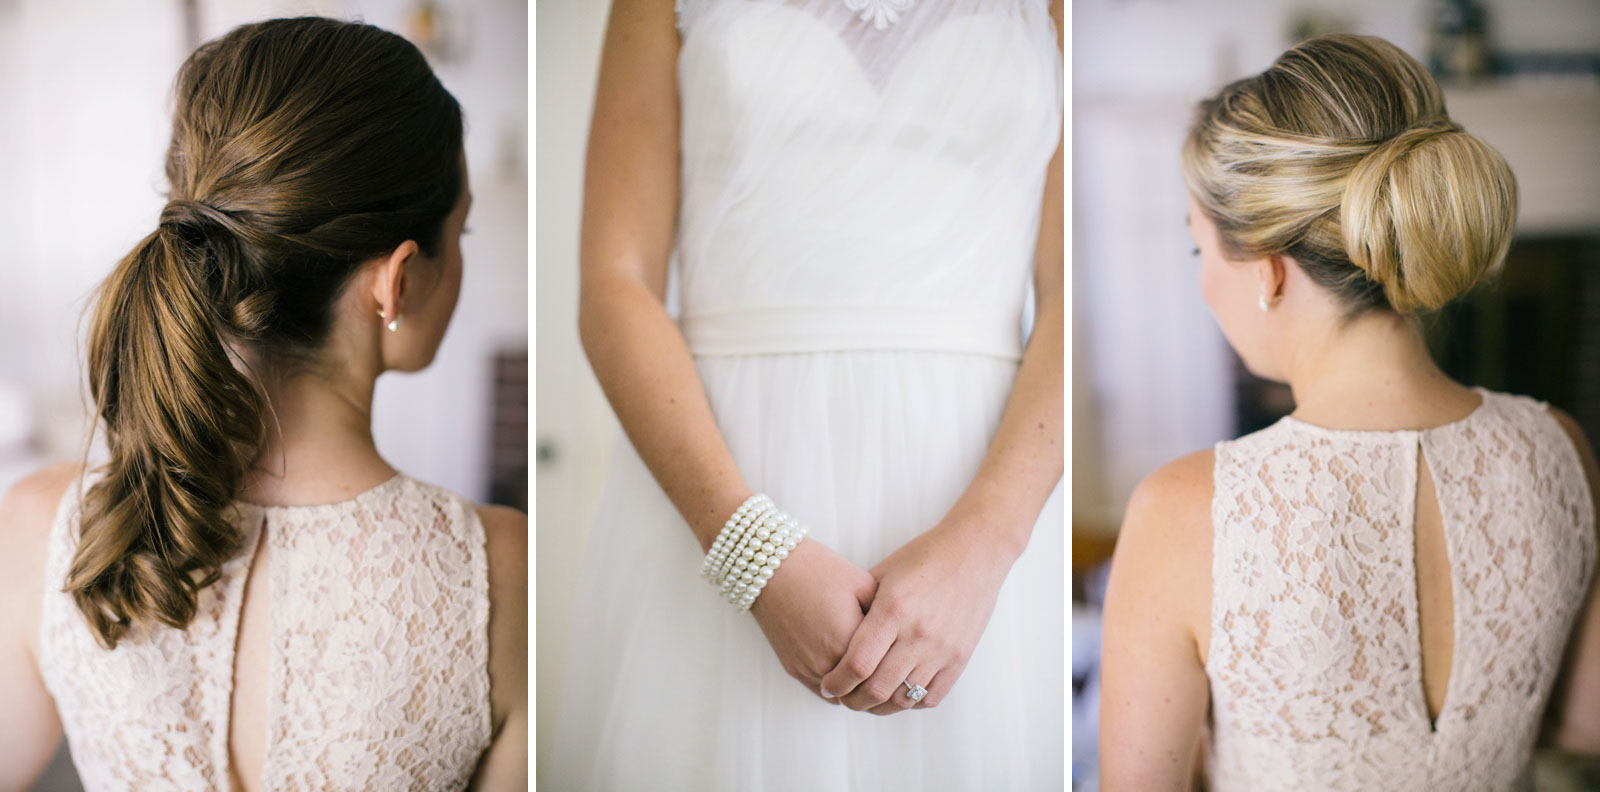 Detail of bride's pearl bracelet and engagement ring, bridesmaid's updos, pink lace bridesmaid dress